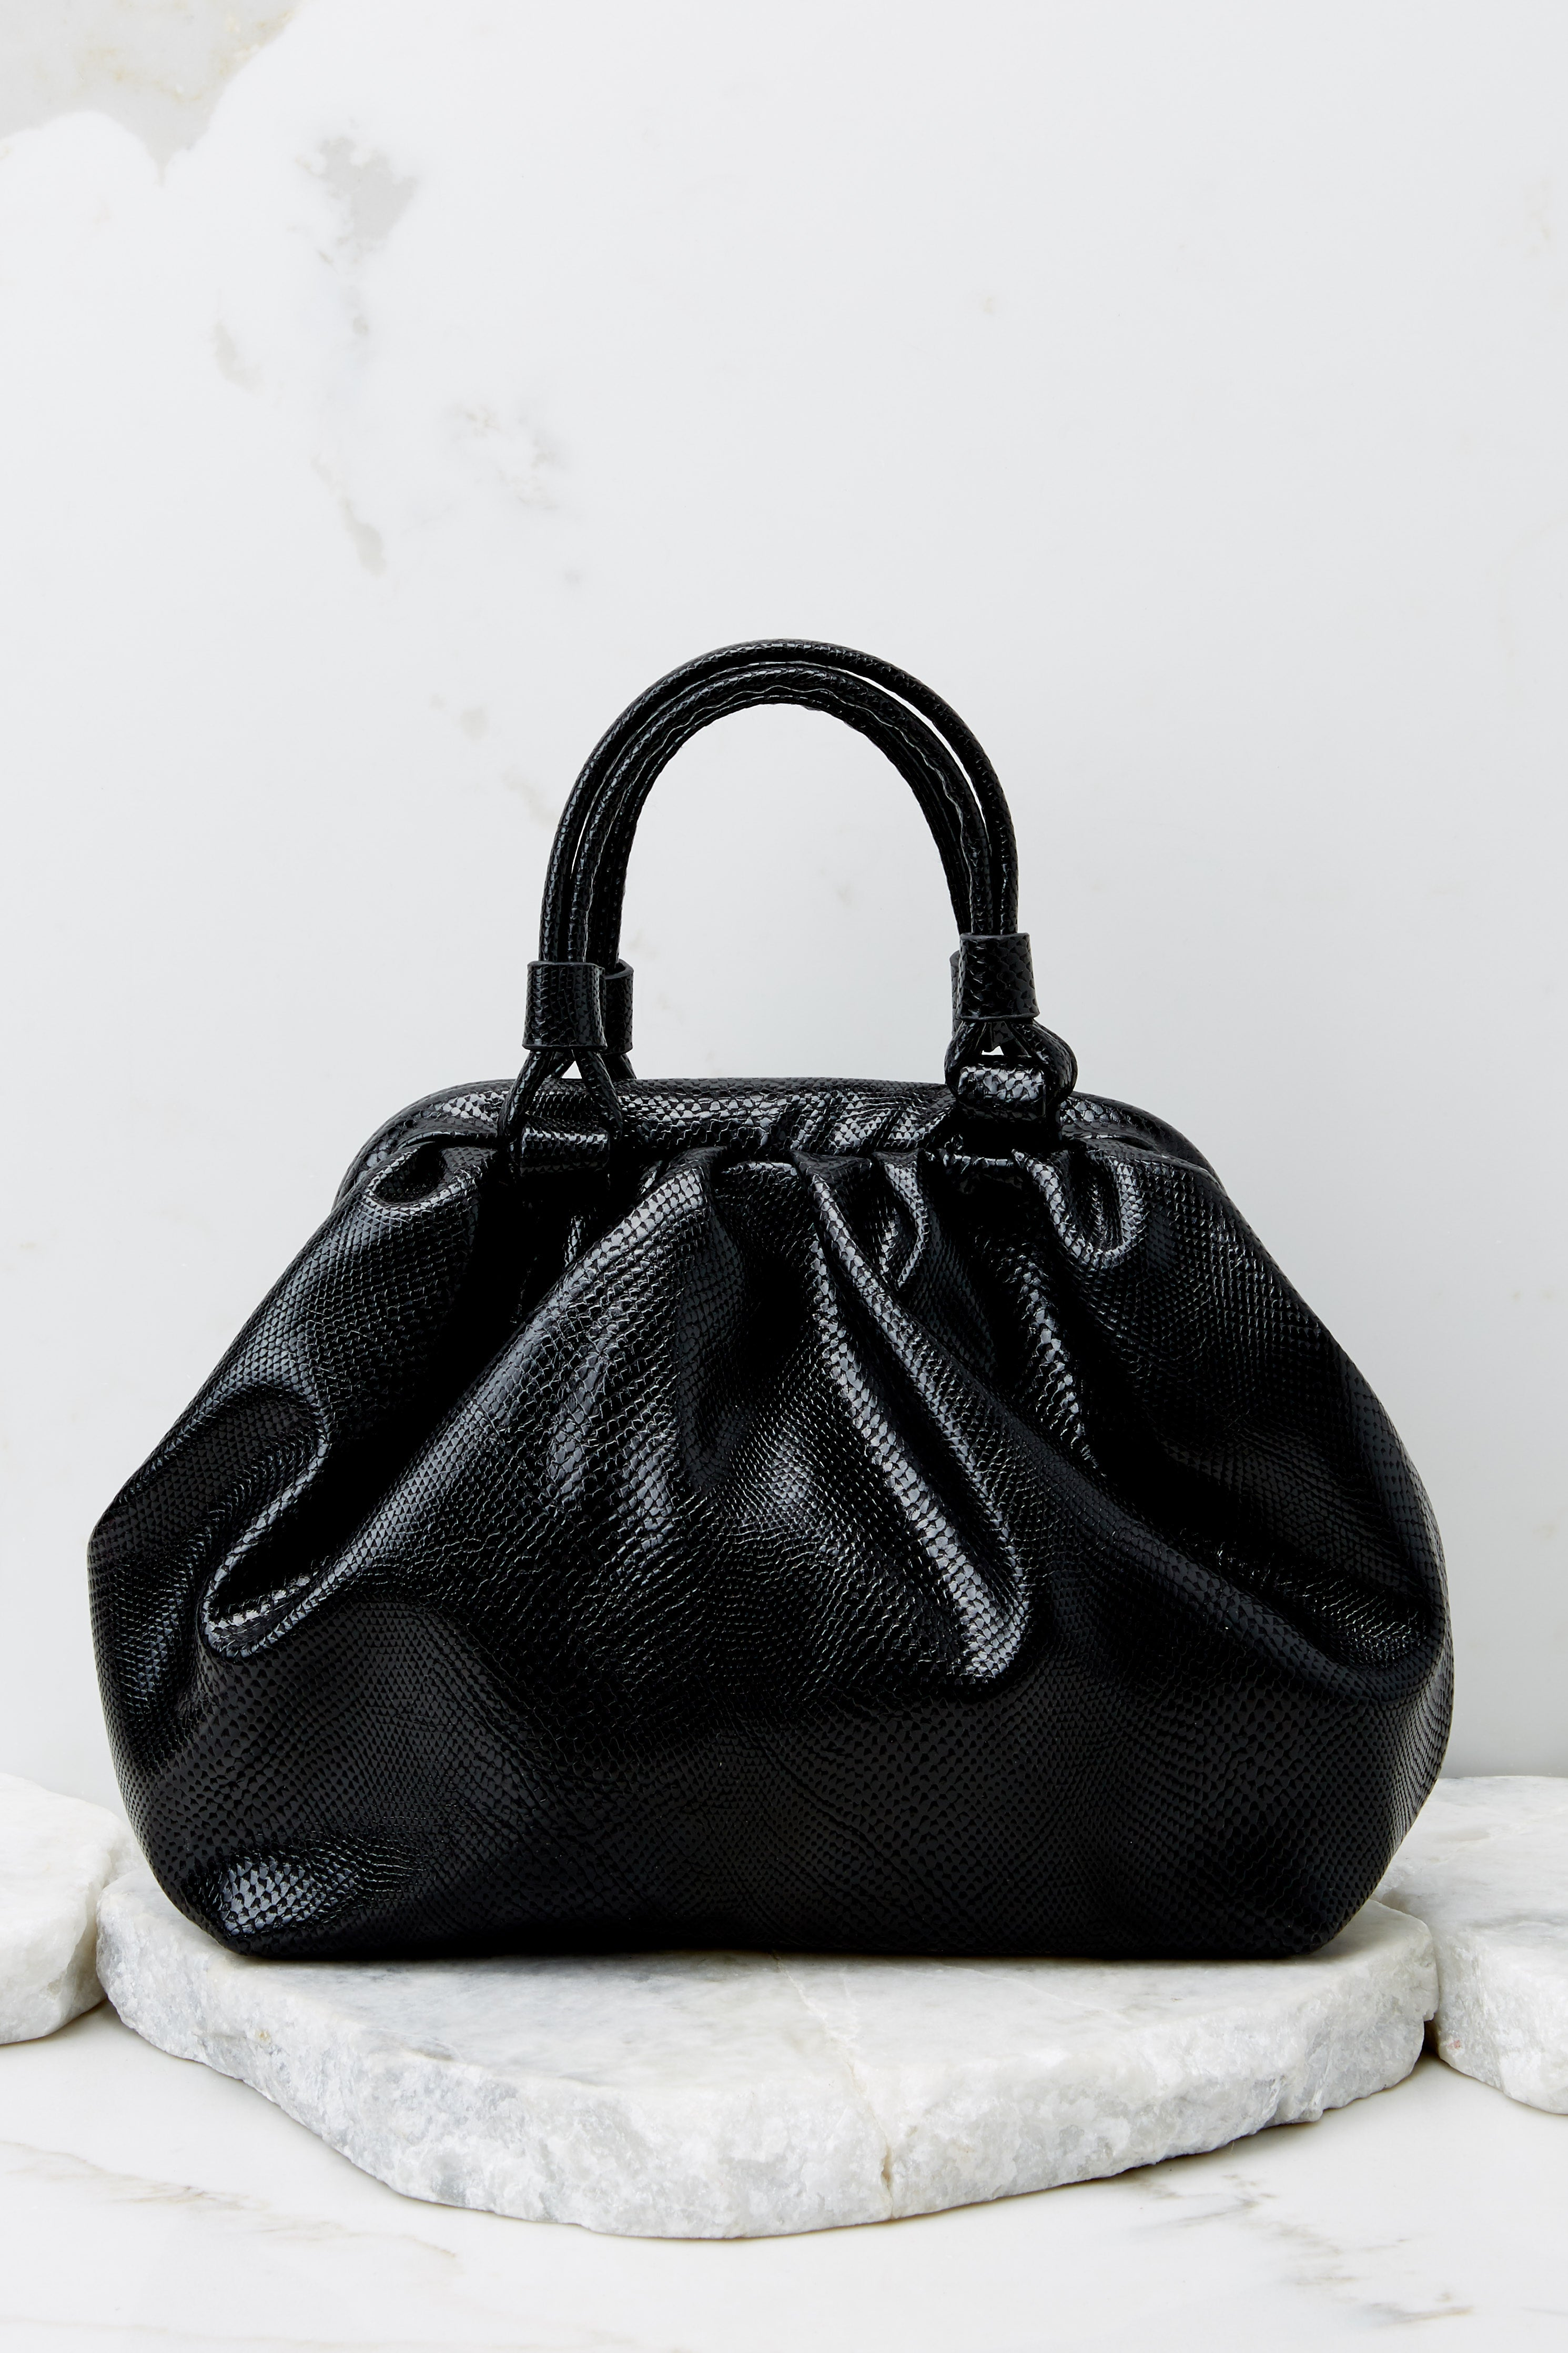 4 No Easy Catch Black Vegan Leather Crossbody Bag at reddress.com